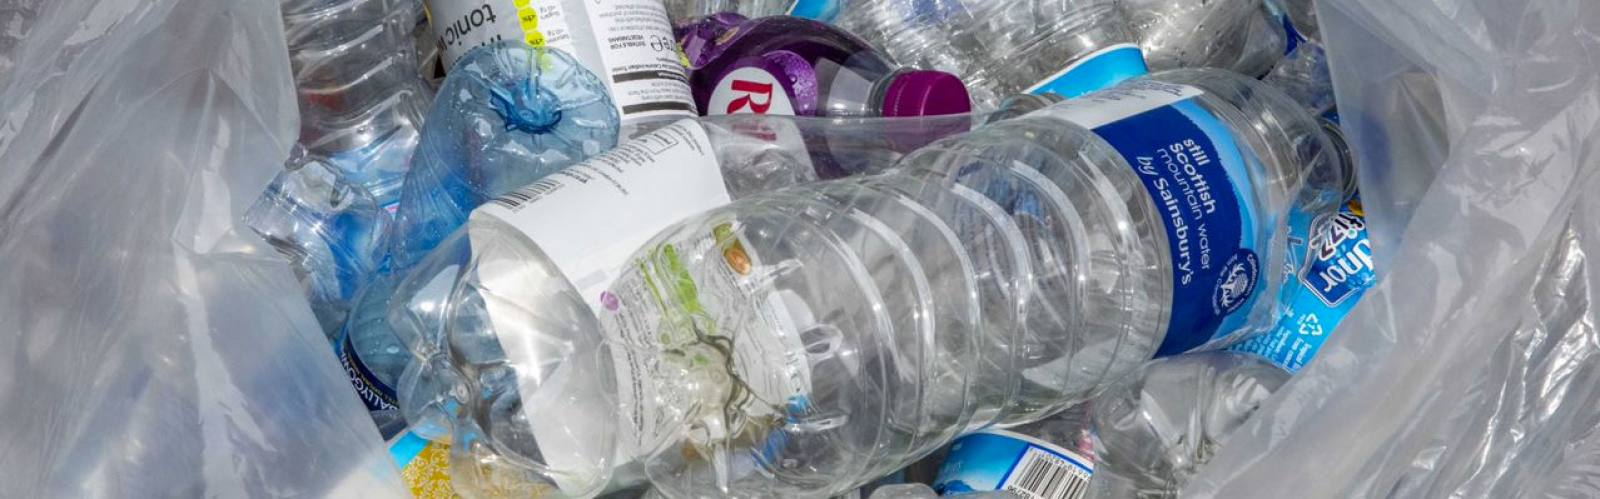 Greenredeem pilot collects over 60,000 plastic bottles in just 16 weeks